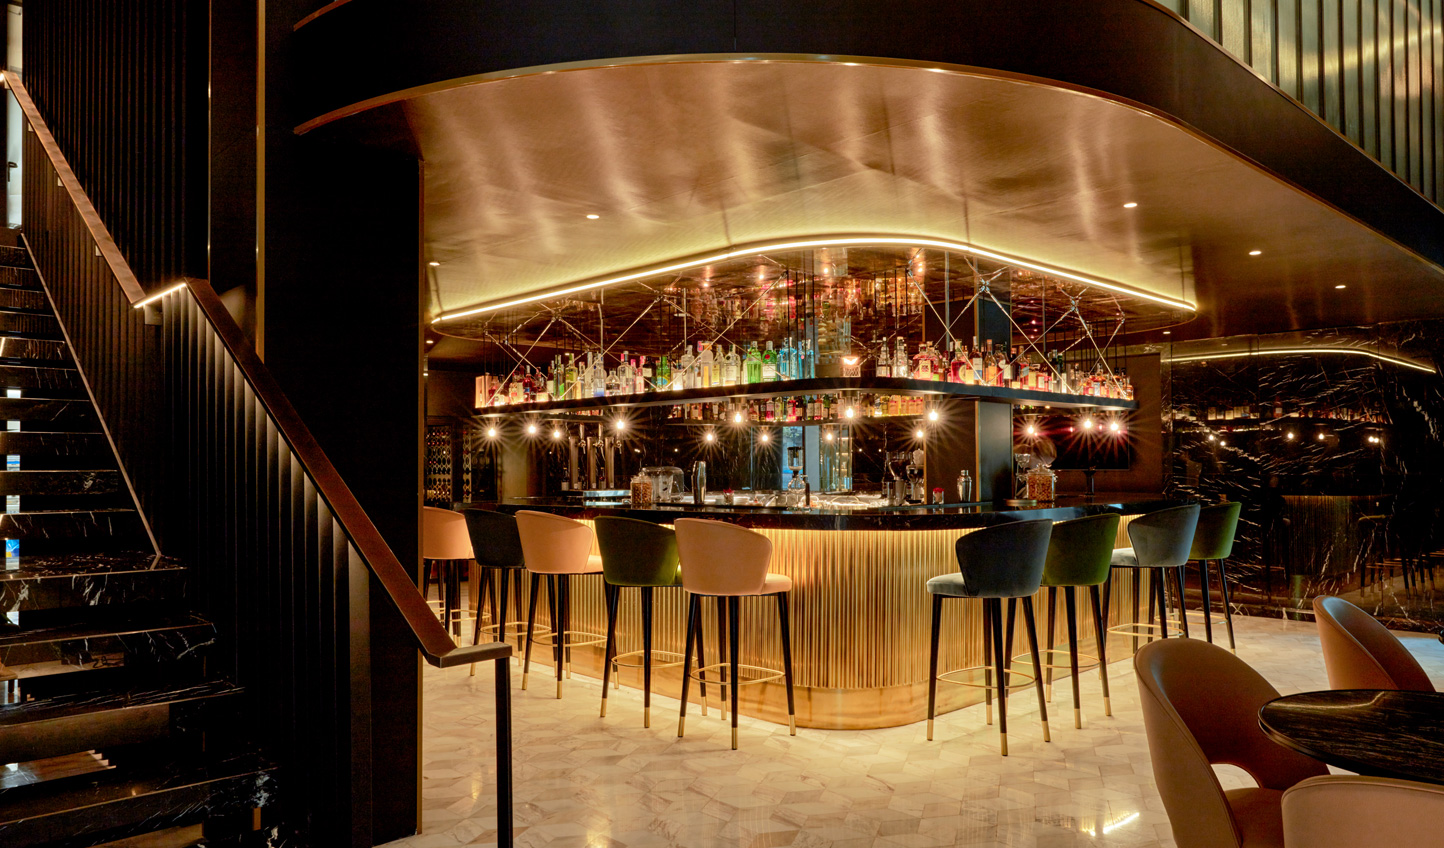 Discover Barcelona's vibrant social scene with a drink at the bar